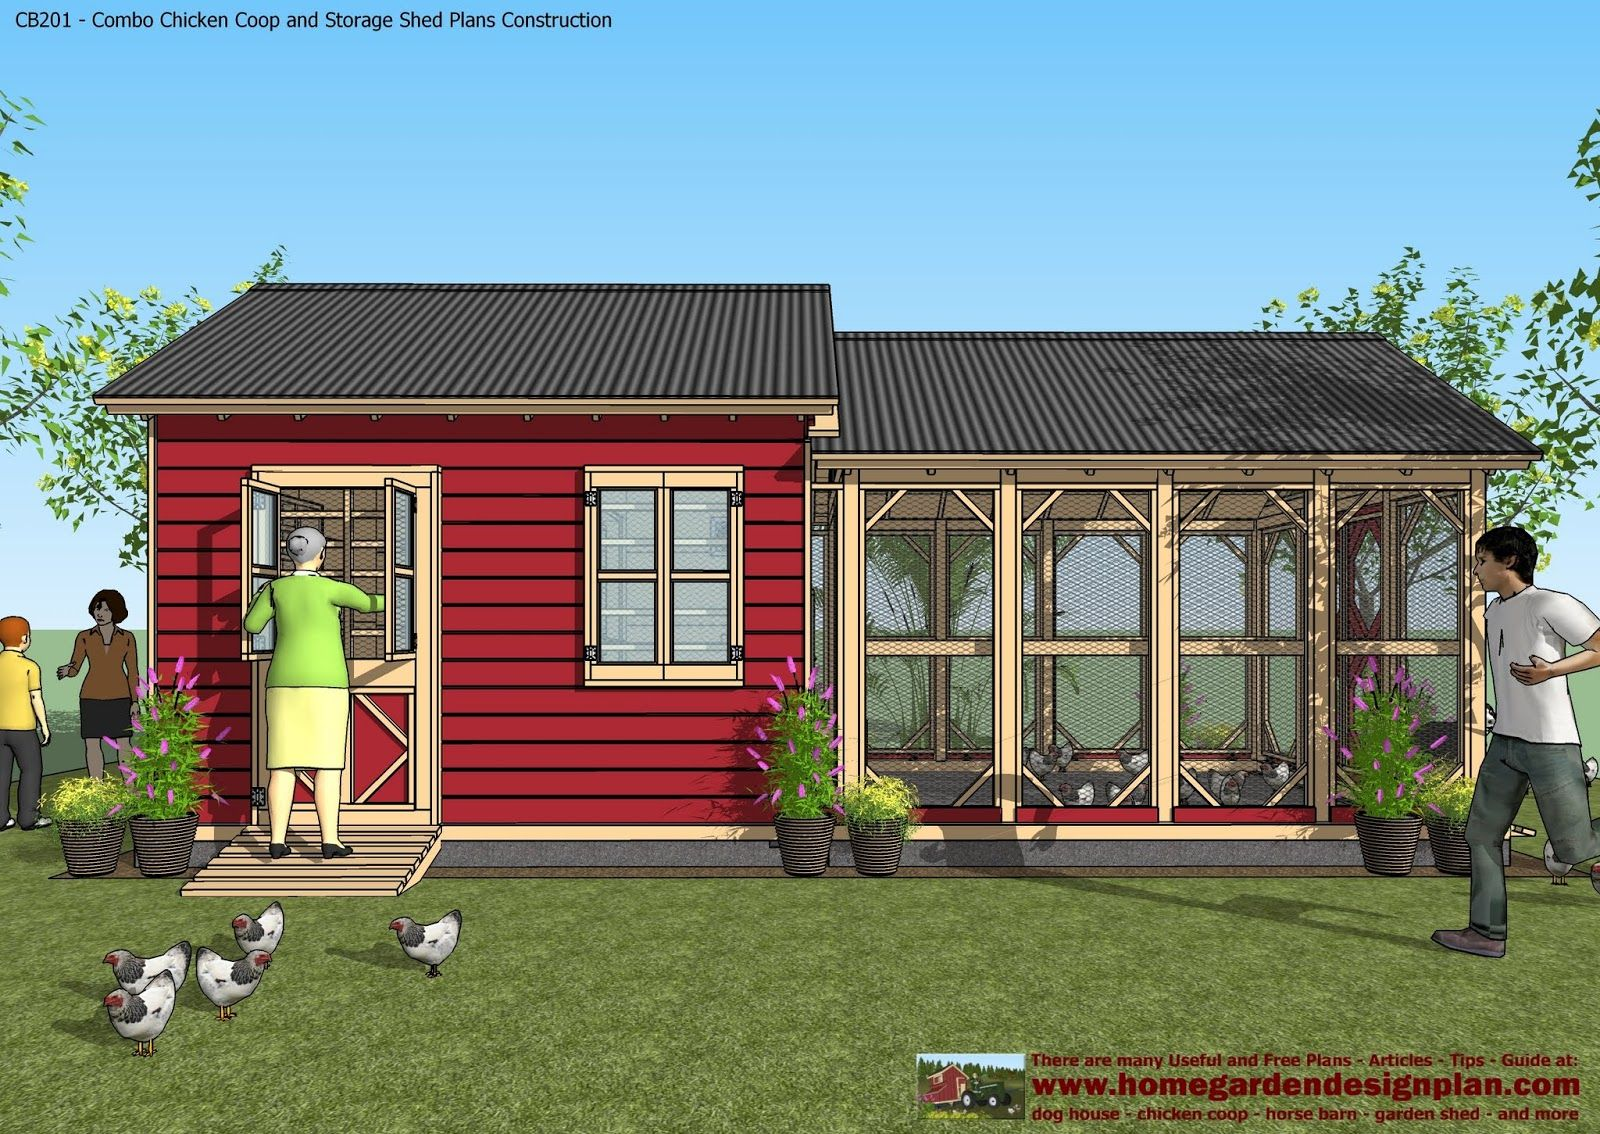 home garden plans: CB201 - Combo Plans - Chicken Coop ...